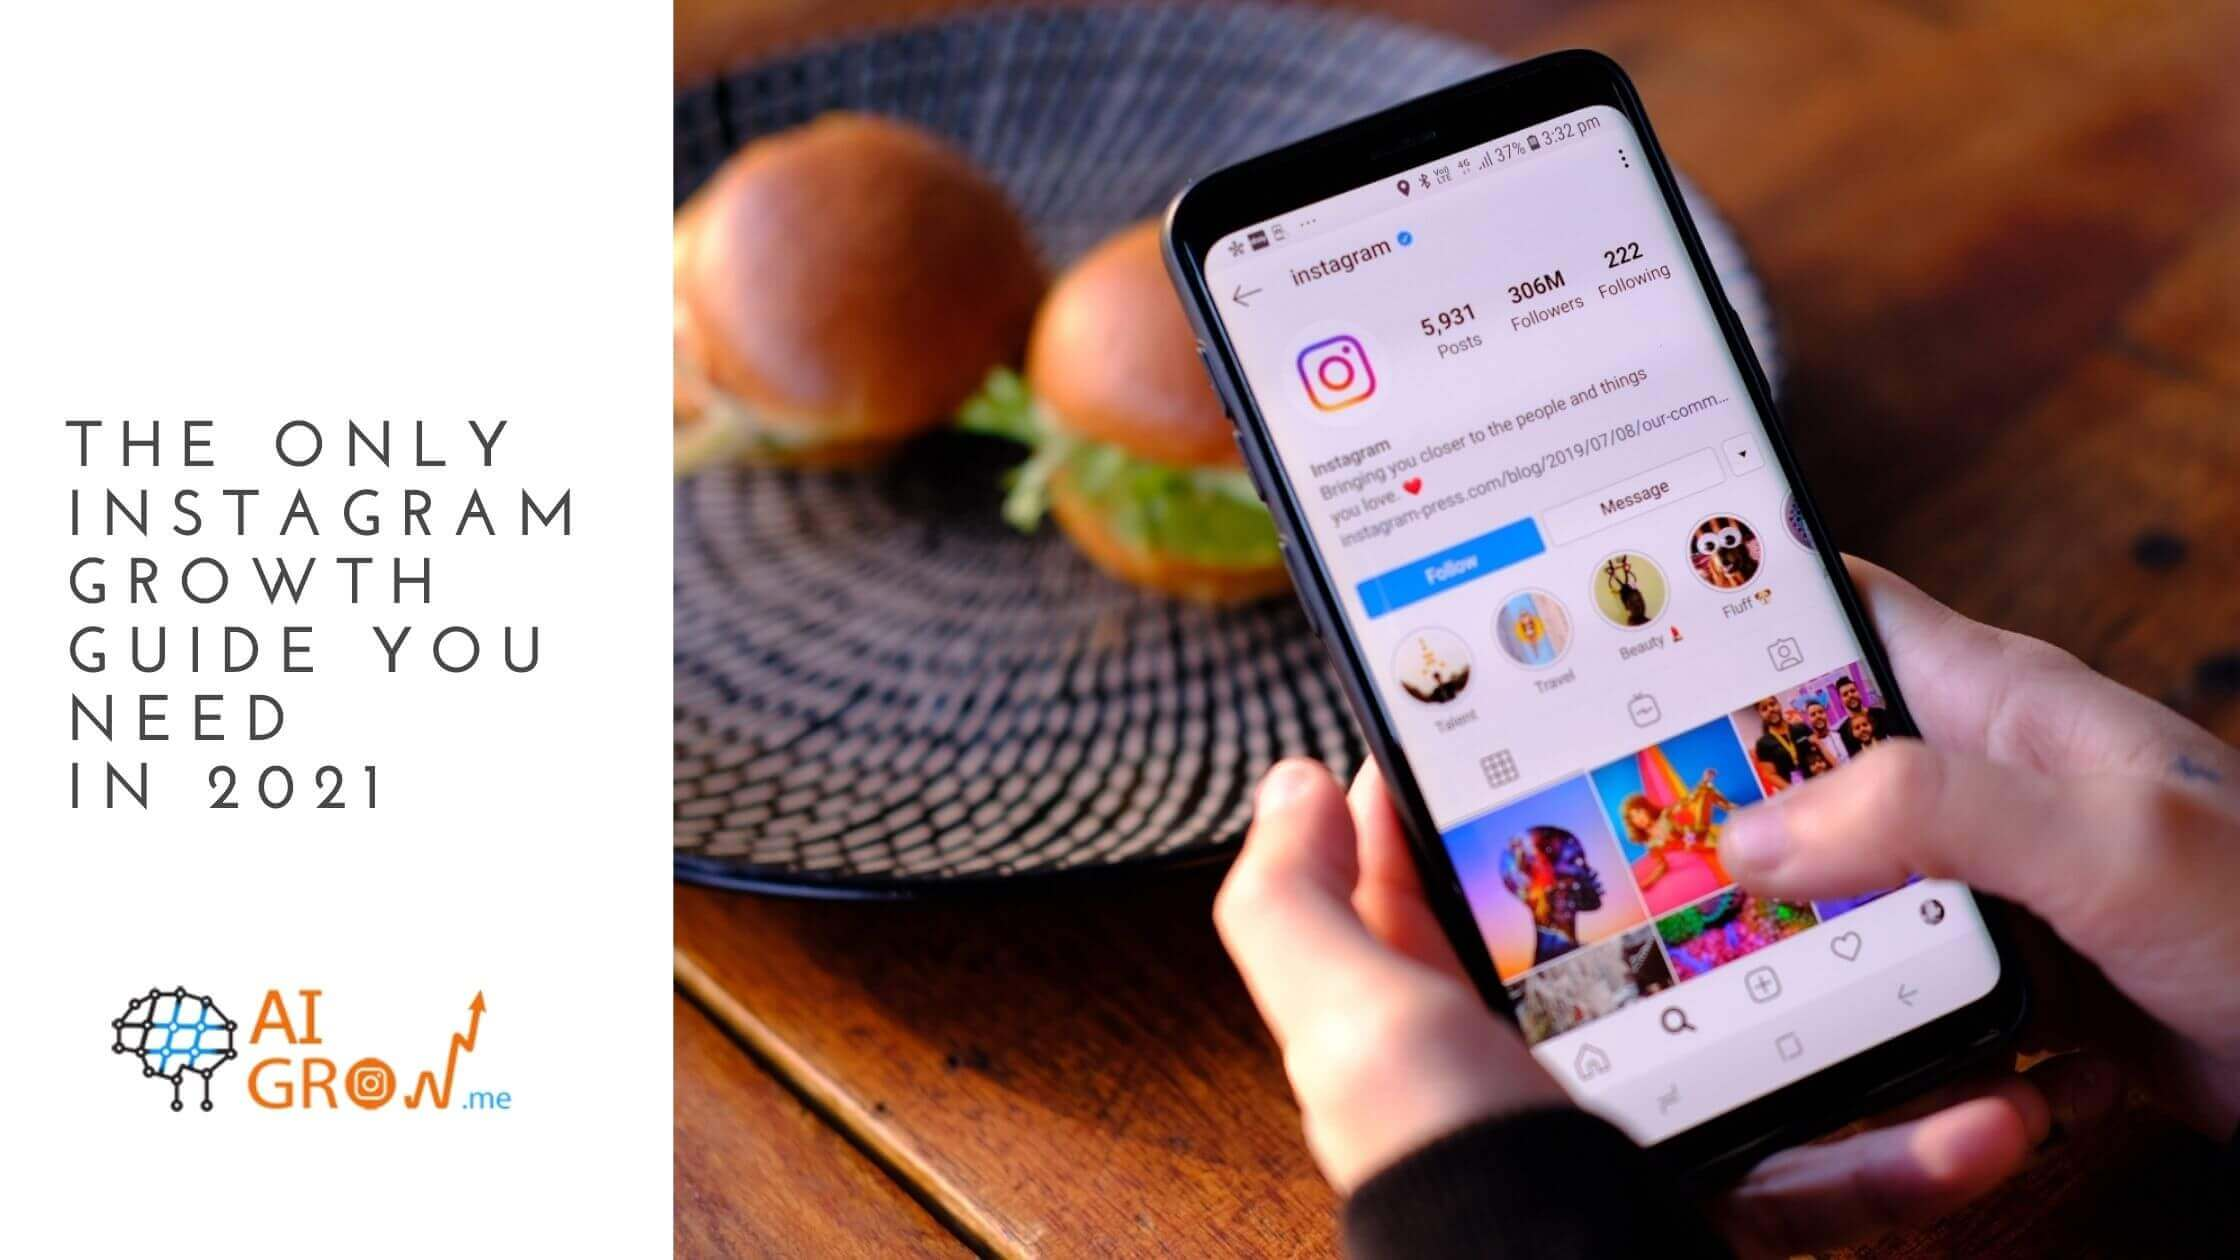 The only Instagram growth guide you need in 2021